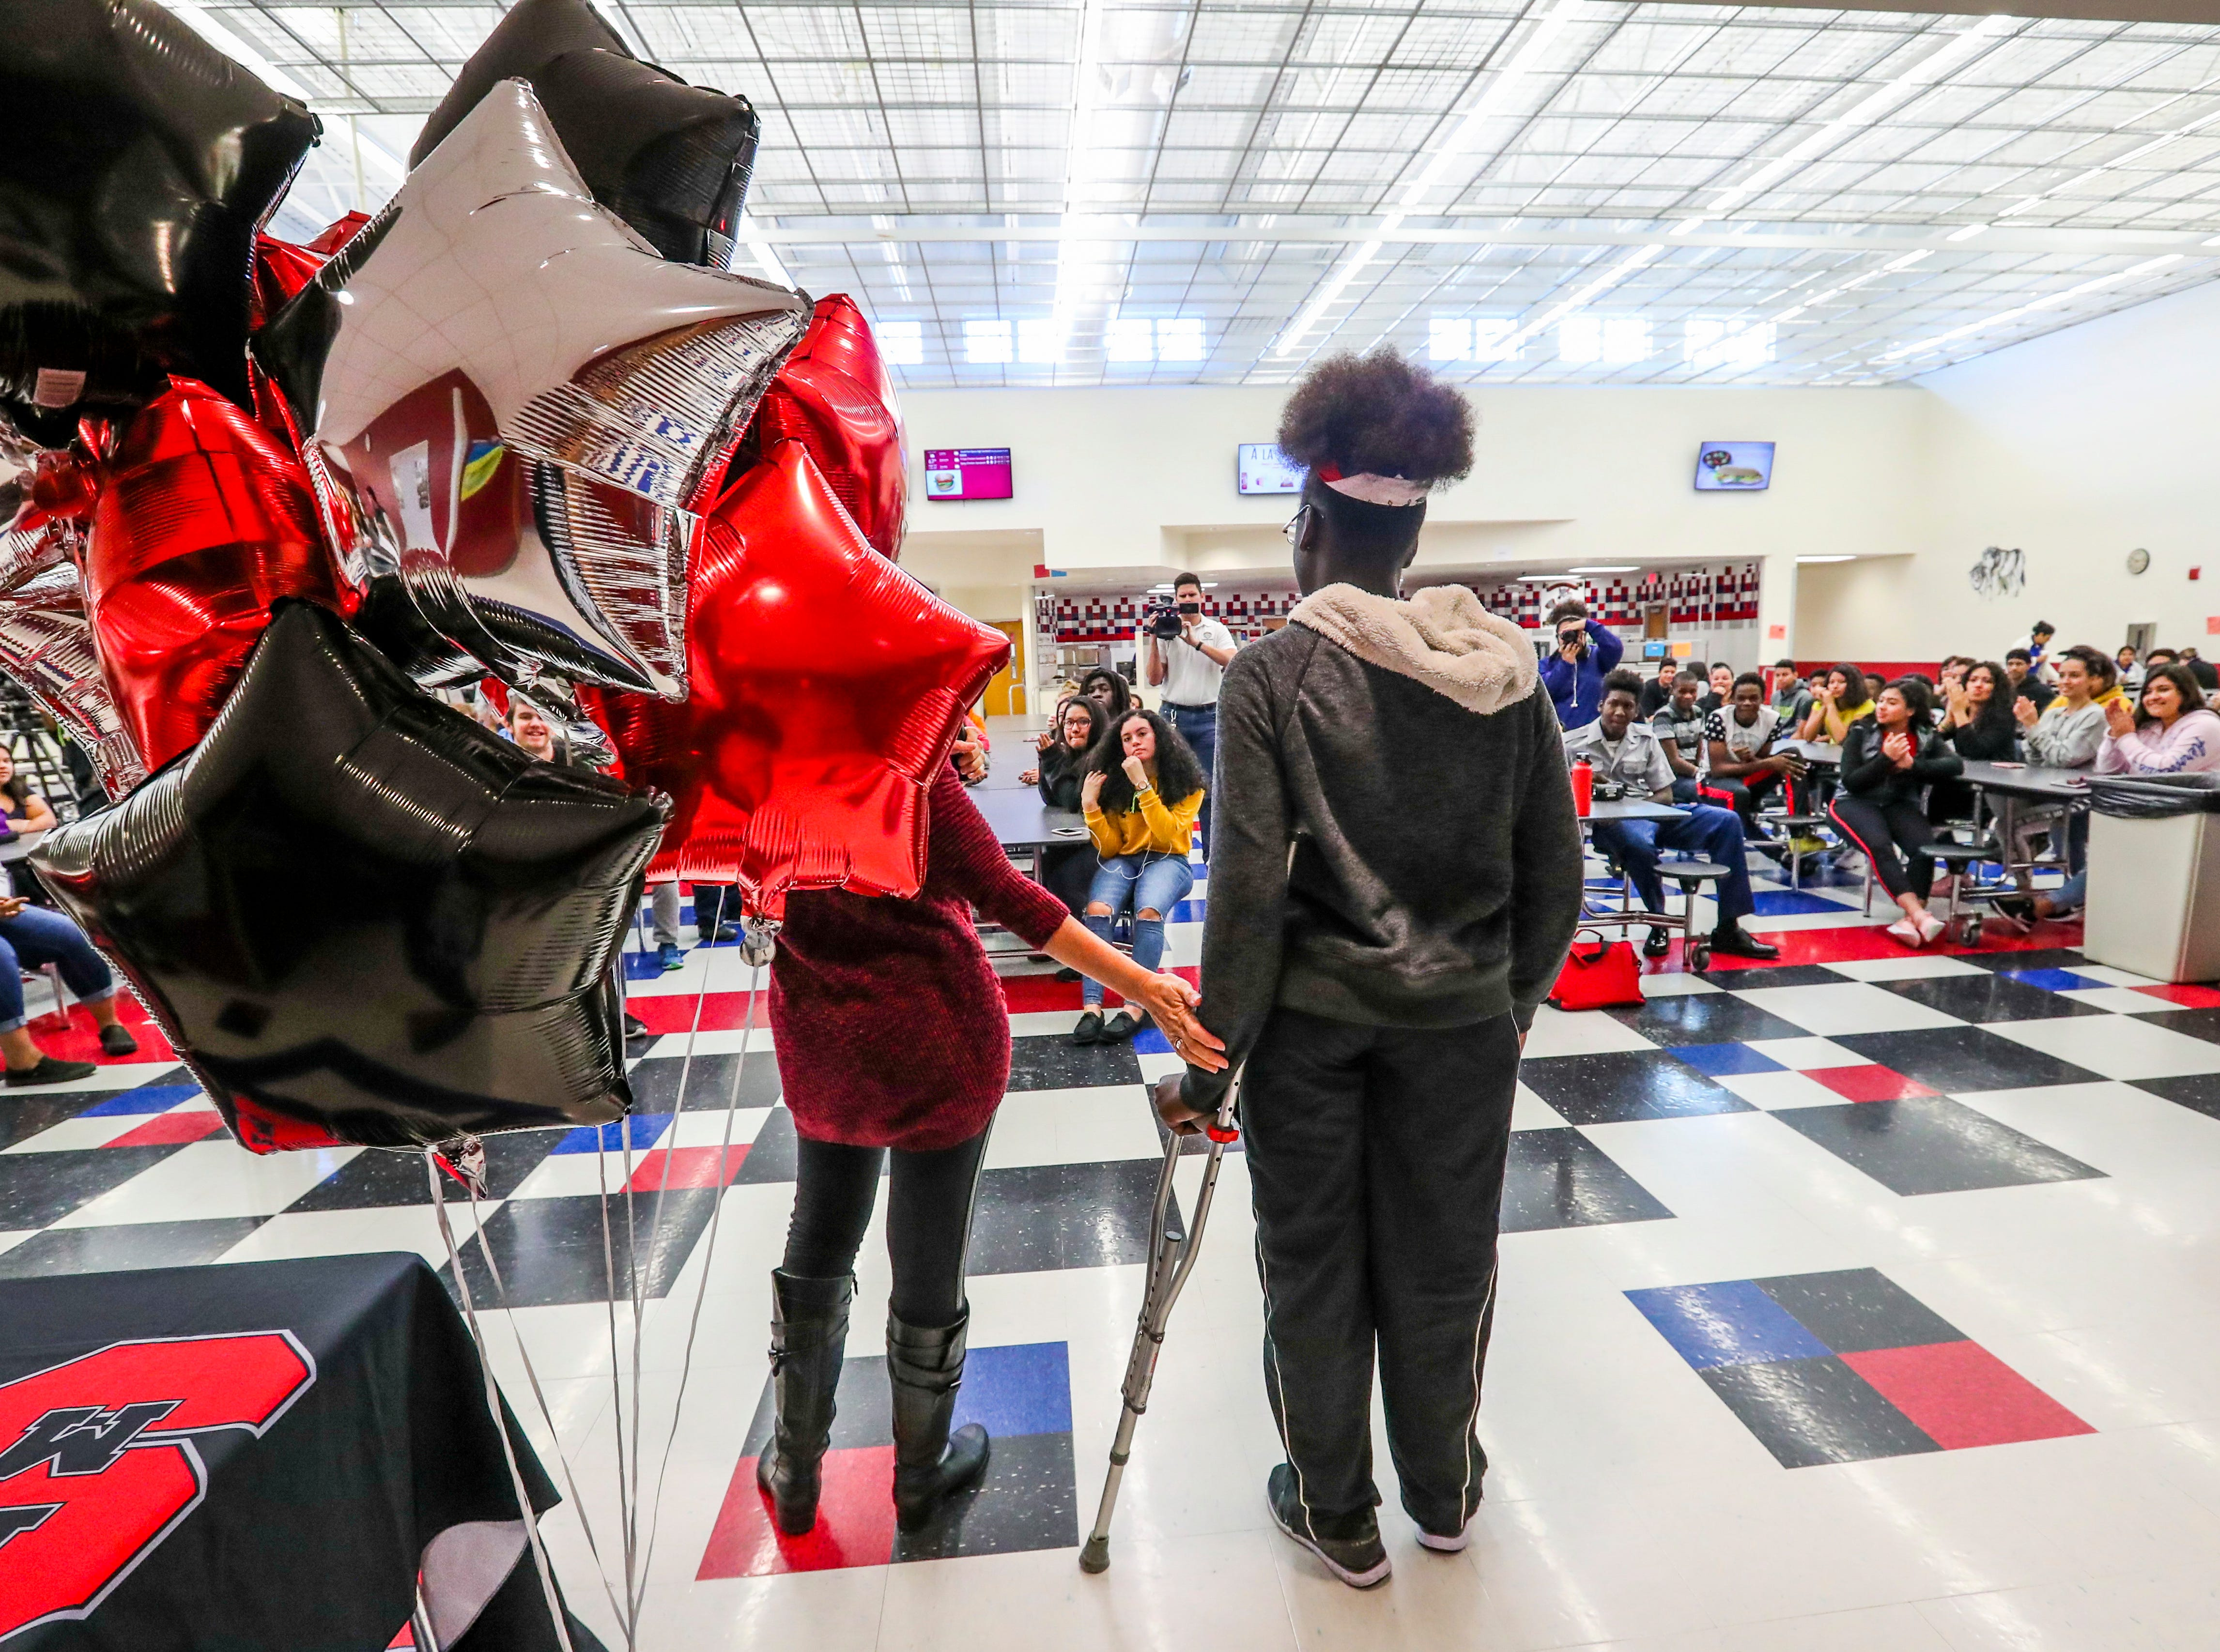 Alia Sainval walks into the cafeteria using her new prothetic leg. South Fort Myers High School student Alia Sainval was born with only one leg. She was using crutches to walk until they broke and she had to use a wheelchair. Here classmates felt this wasn't fair and raised money to get her a prosthetic leg. Alia was just given a prosthetic leg and is walking for the very first time in her life. The National Honor Society raised the money for the leg. They had a celebration in the lunchroom to thank everyone involved.